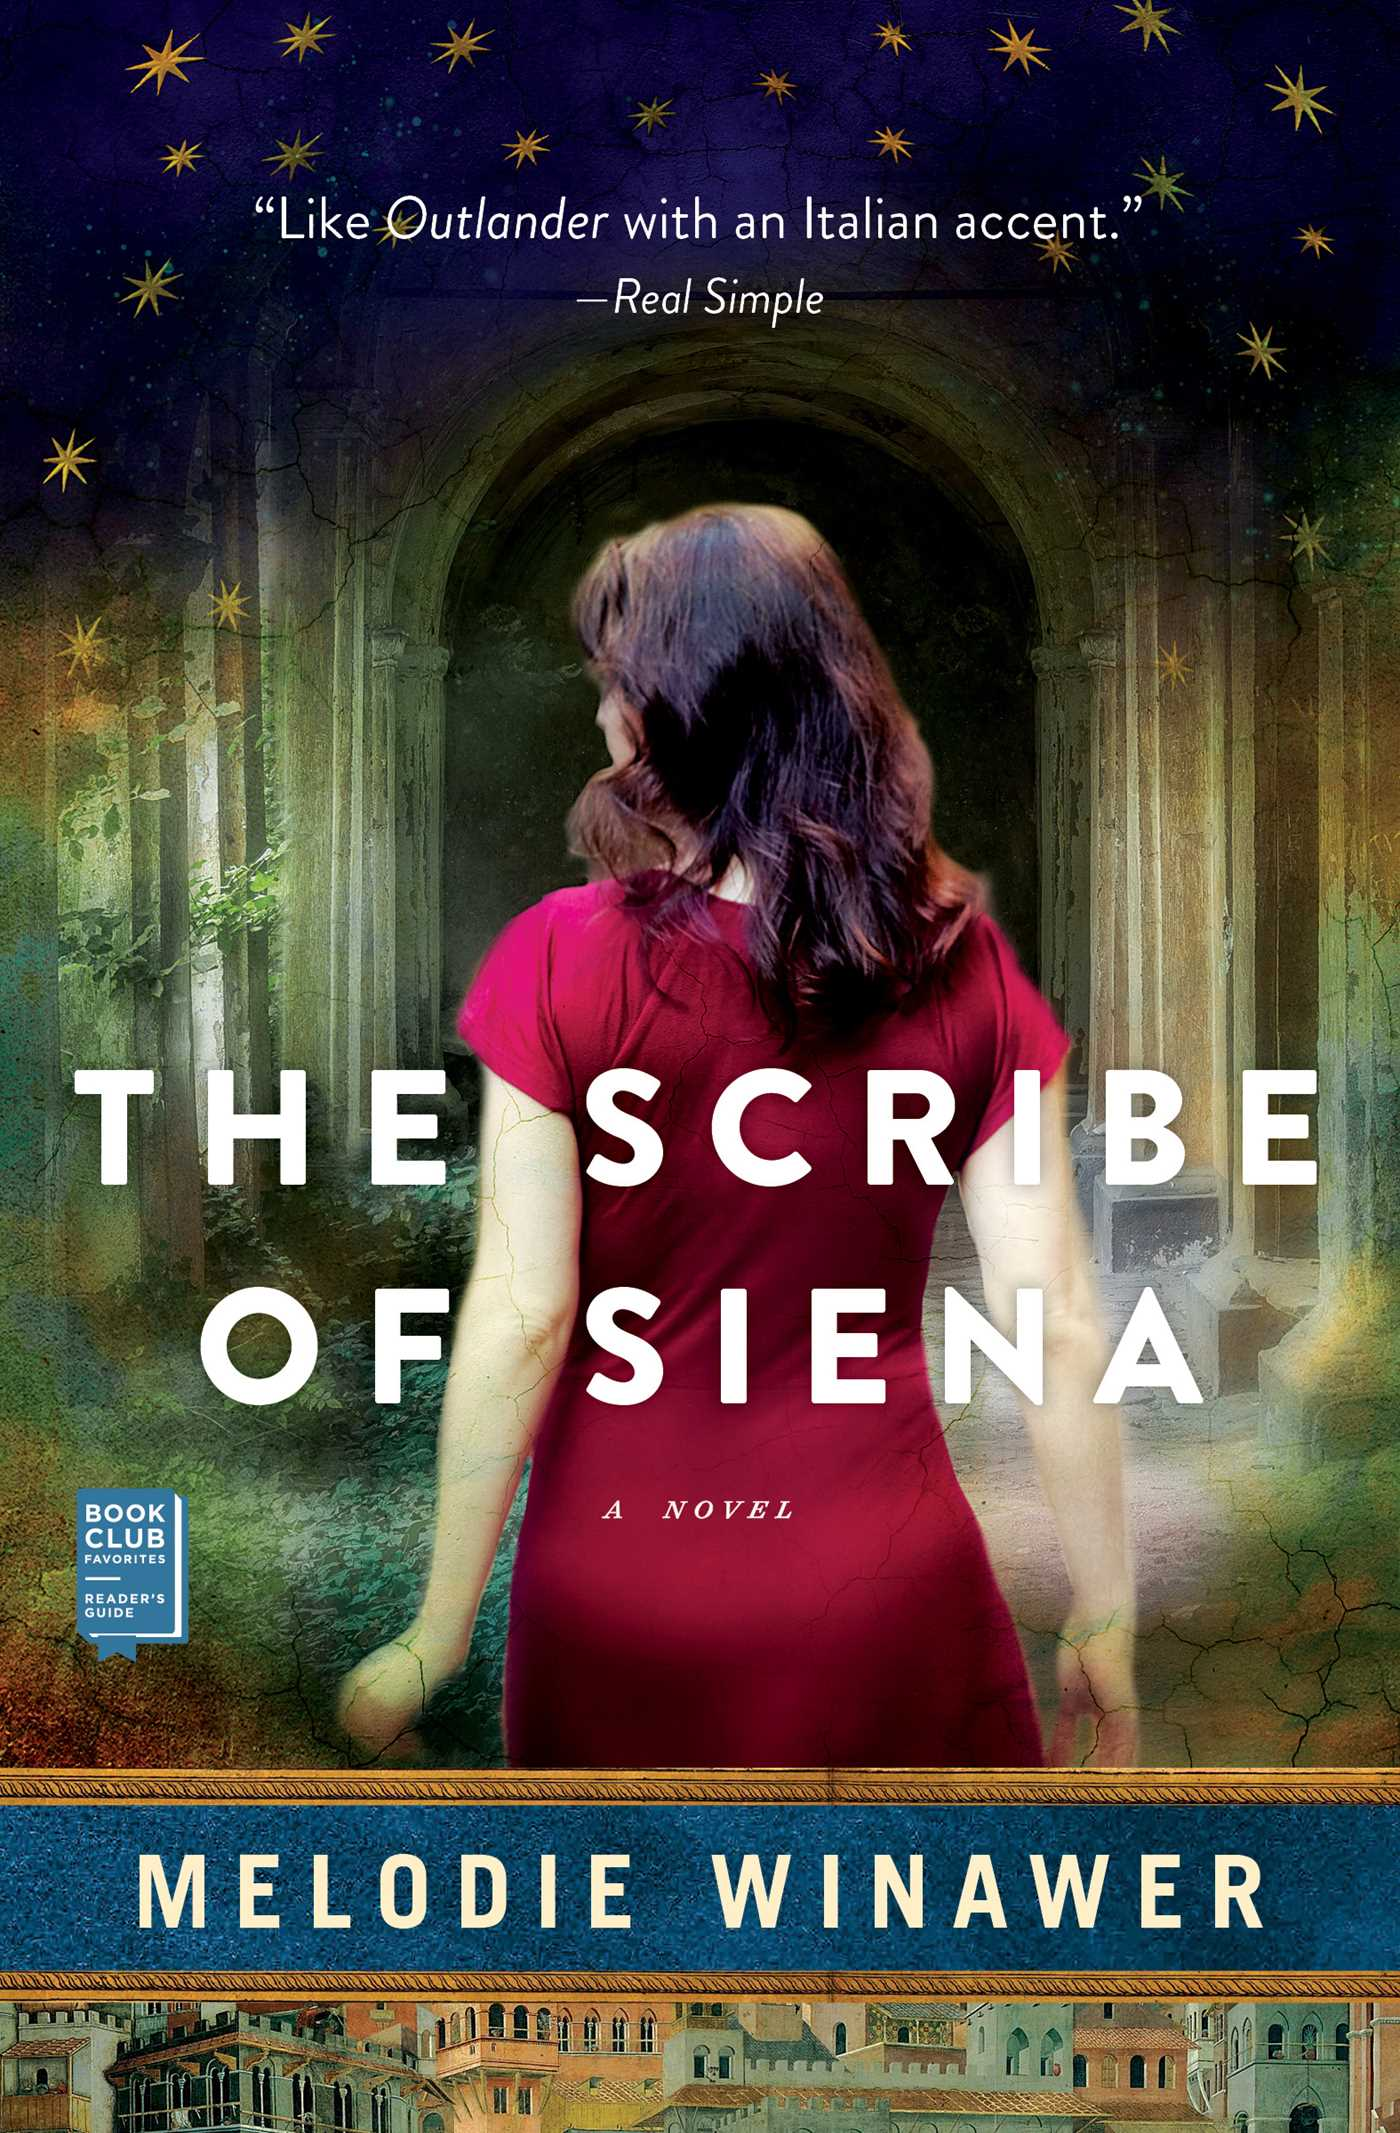 The scribe of siena 9781501152269 hr